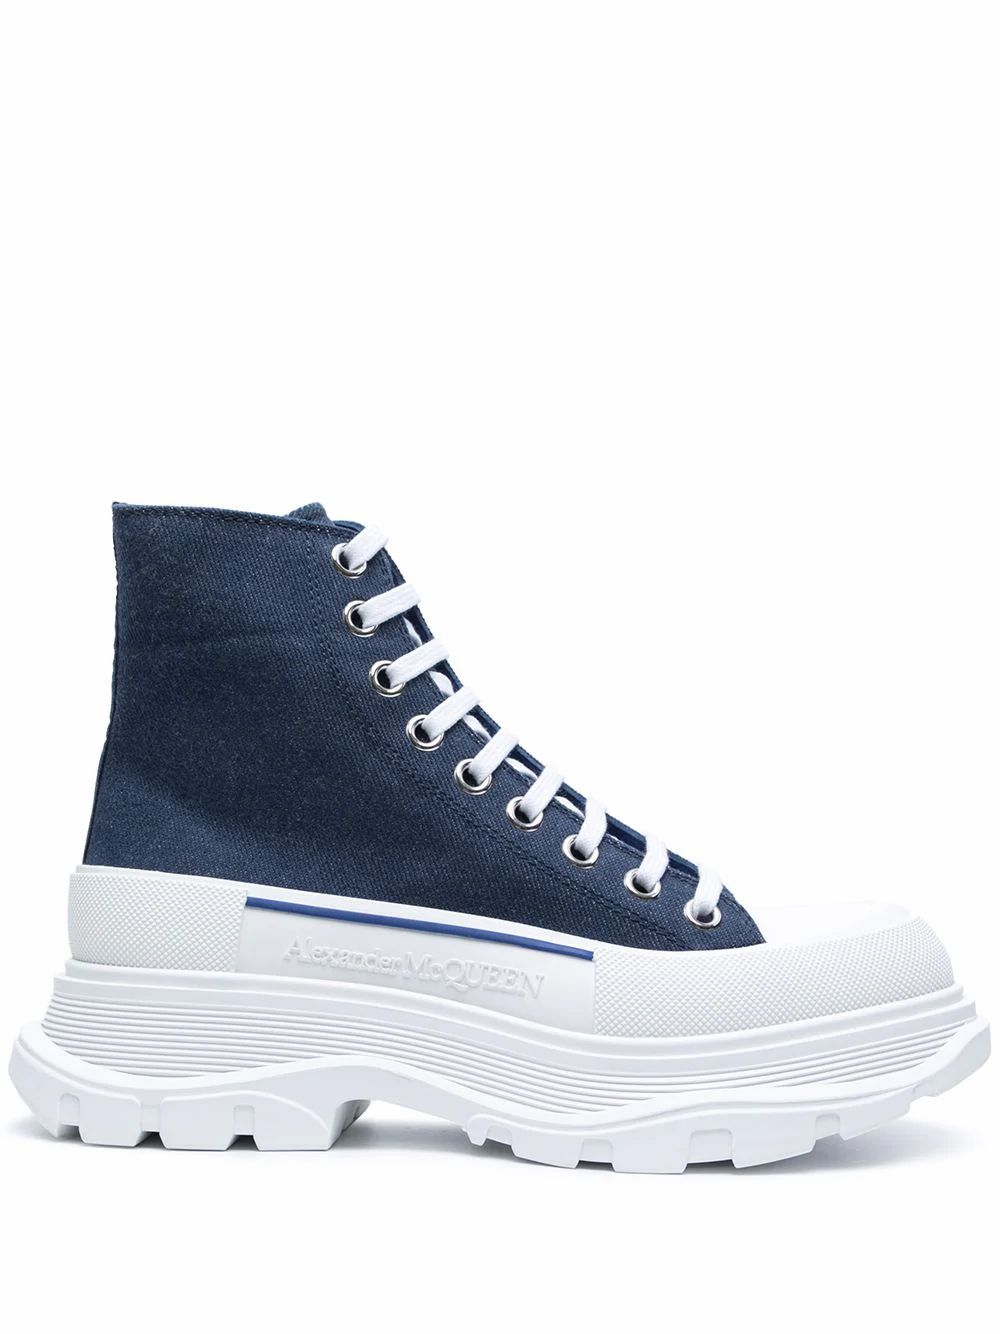 Mcq By Alexander Mcqueen Ankle highs MCQ BY ALEXANDER MCQUEEN WOMEN'S 611706W4PD14177 BLUE COTTON ANKLE BOOTS